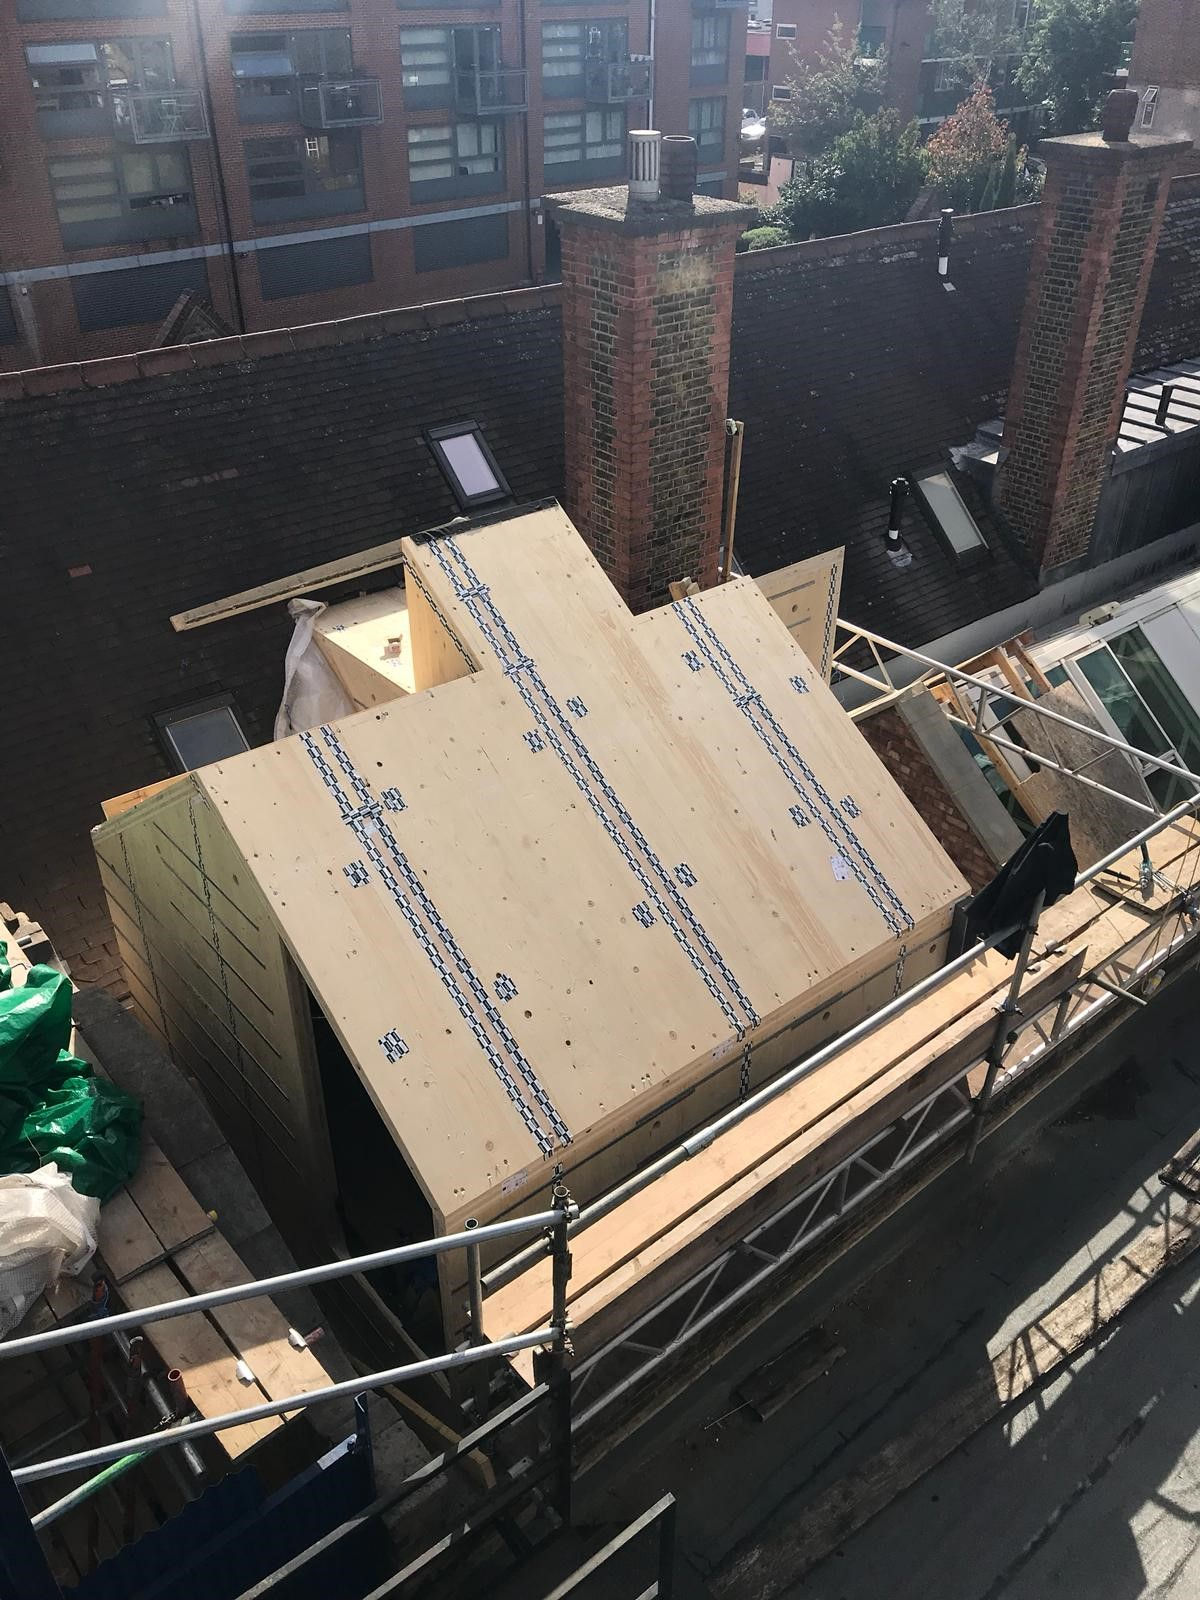 60 Tanner Street - CLT Structure from above